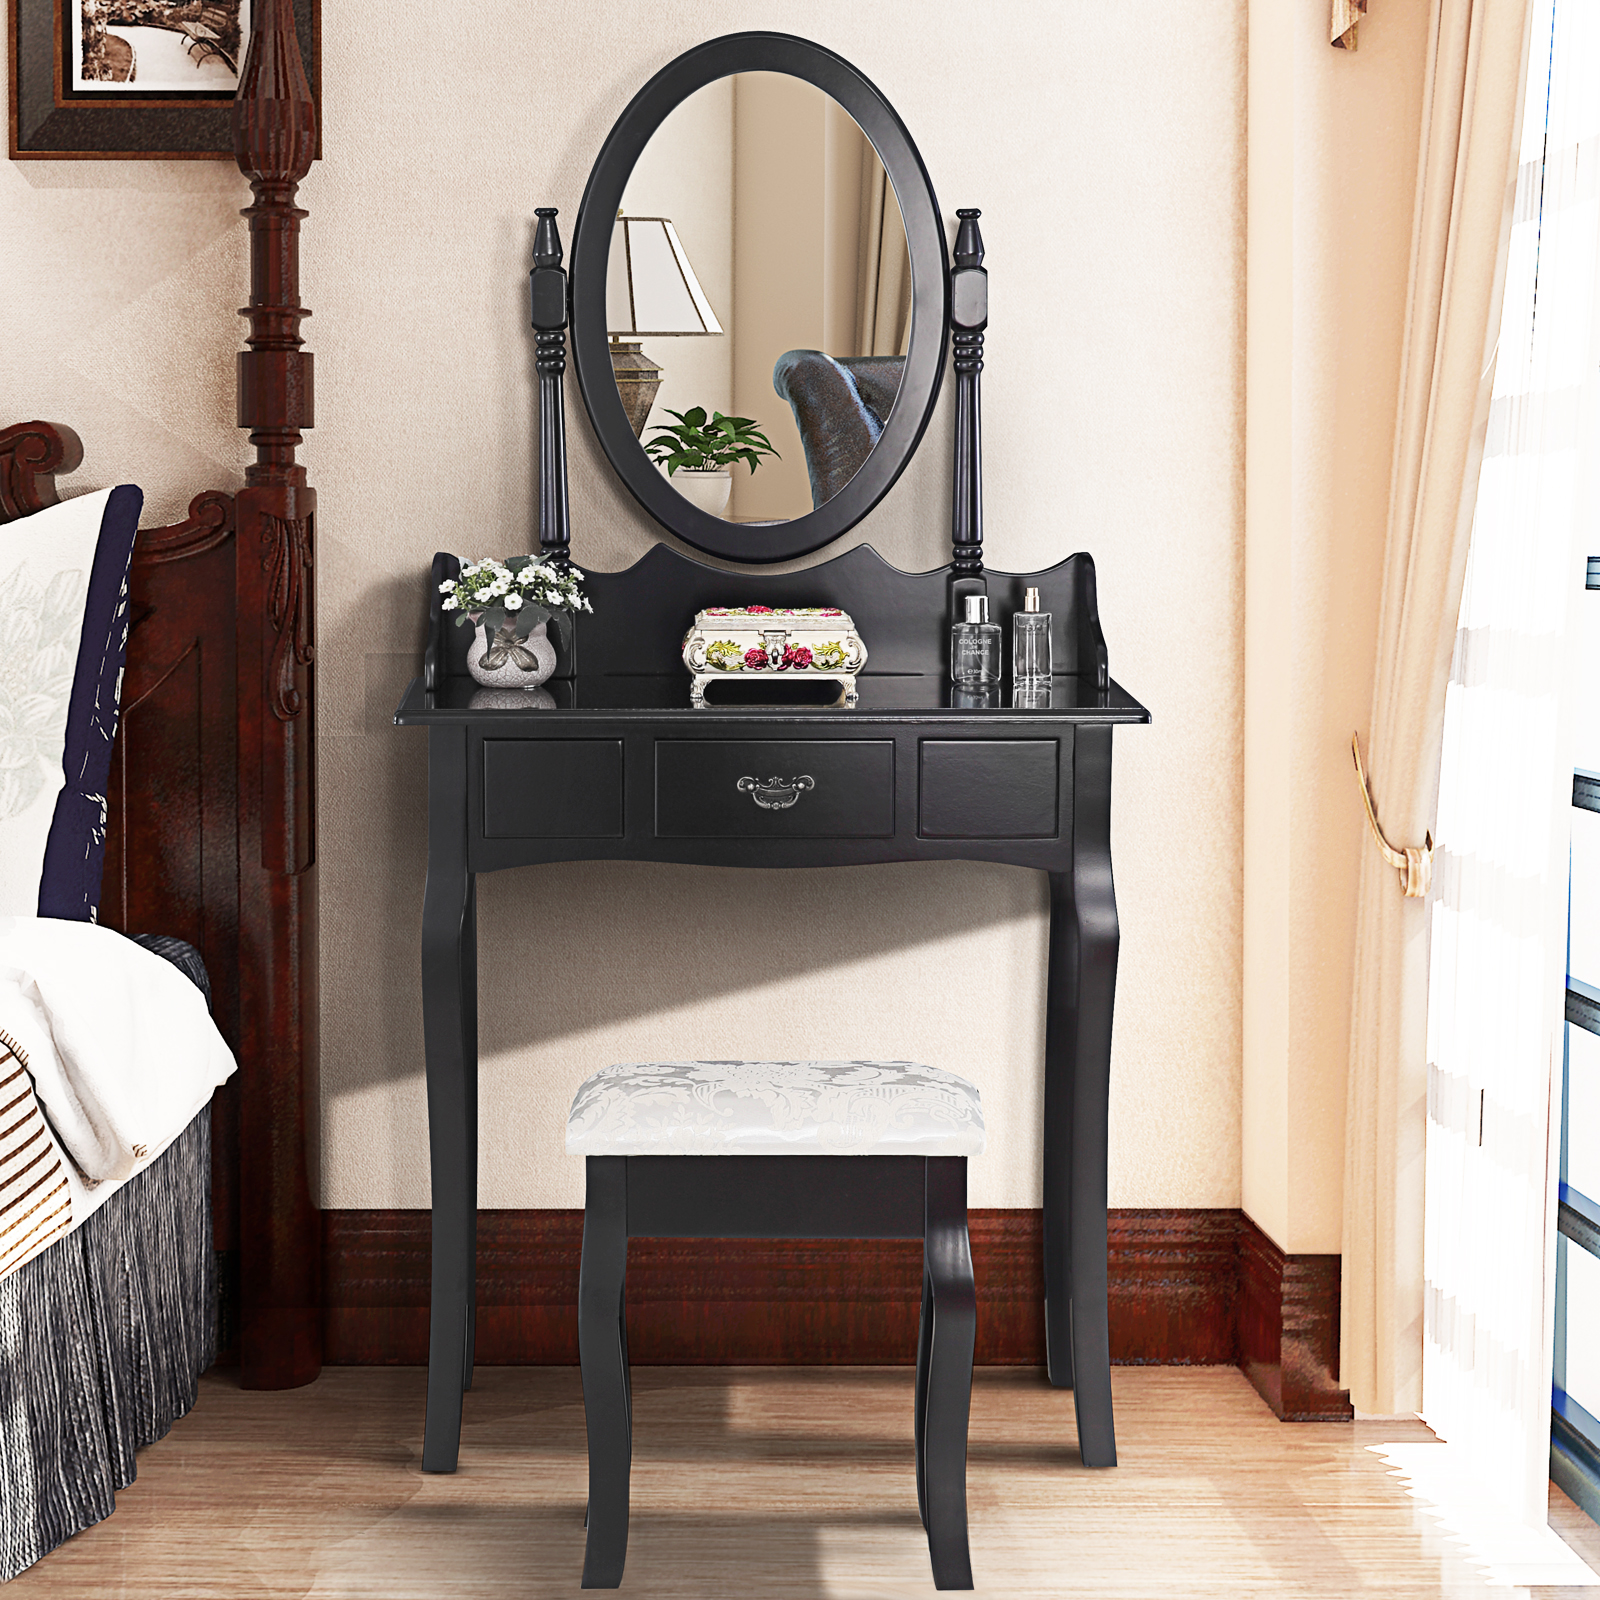 Oval bedroom furniture